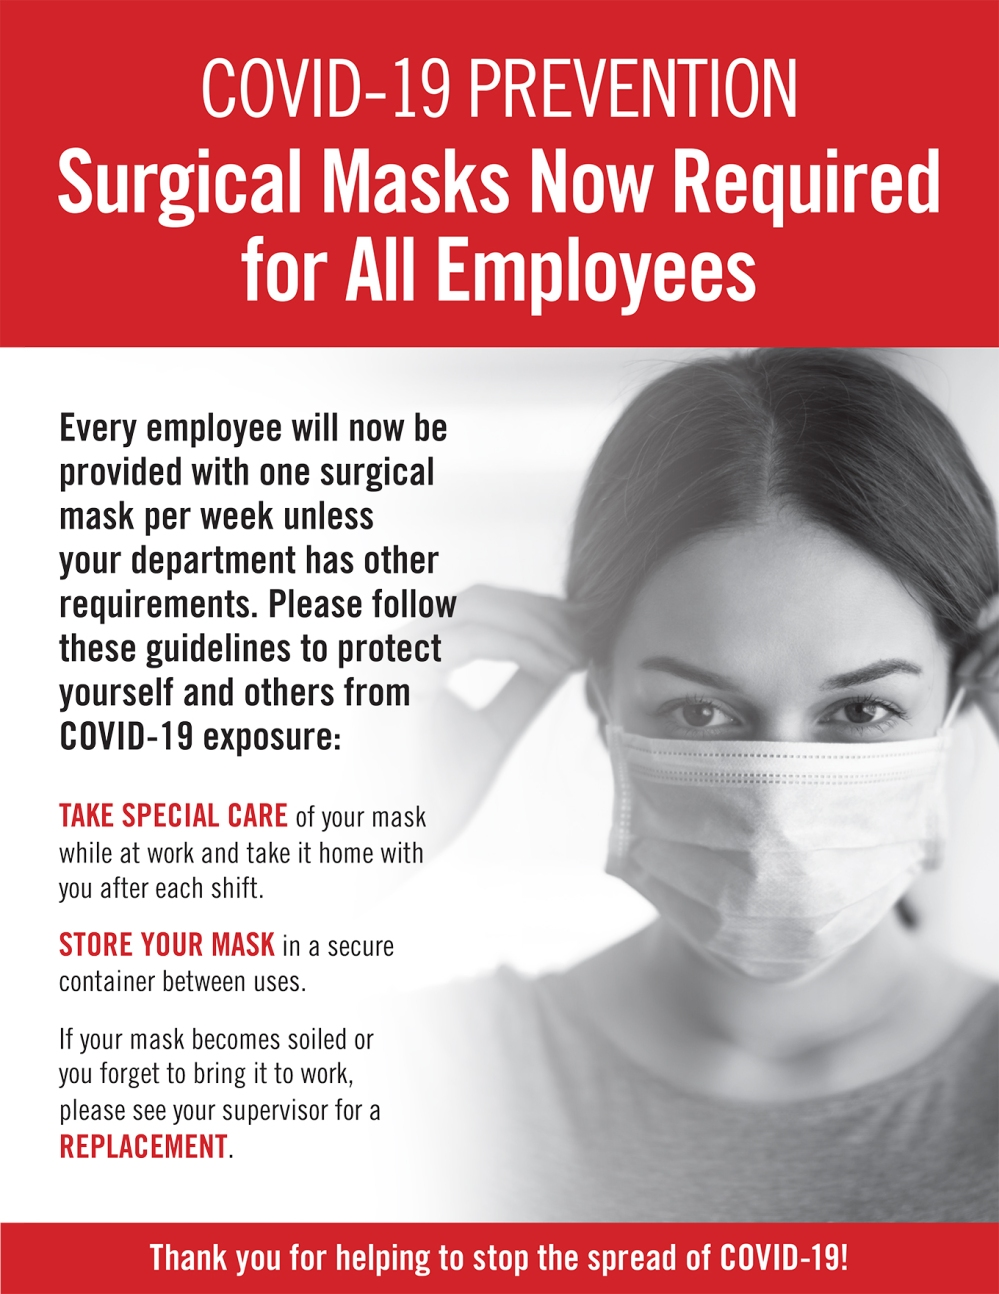 4-10-20 - COVID-19 Surgical Mask Requirement